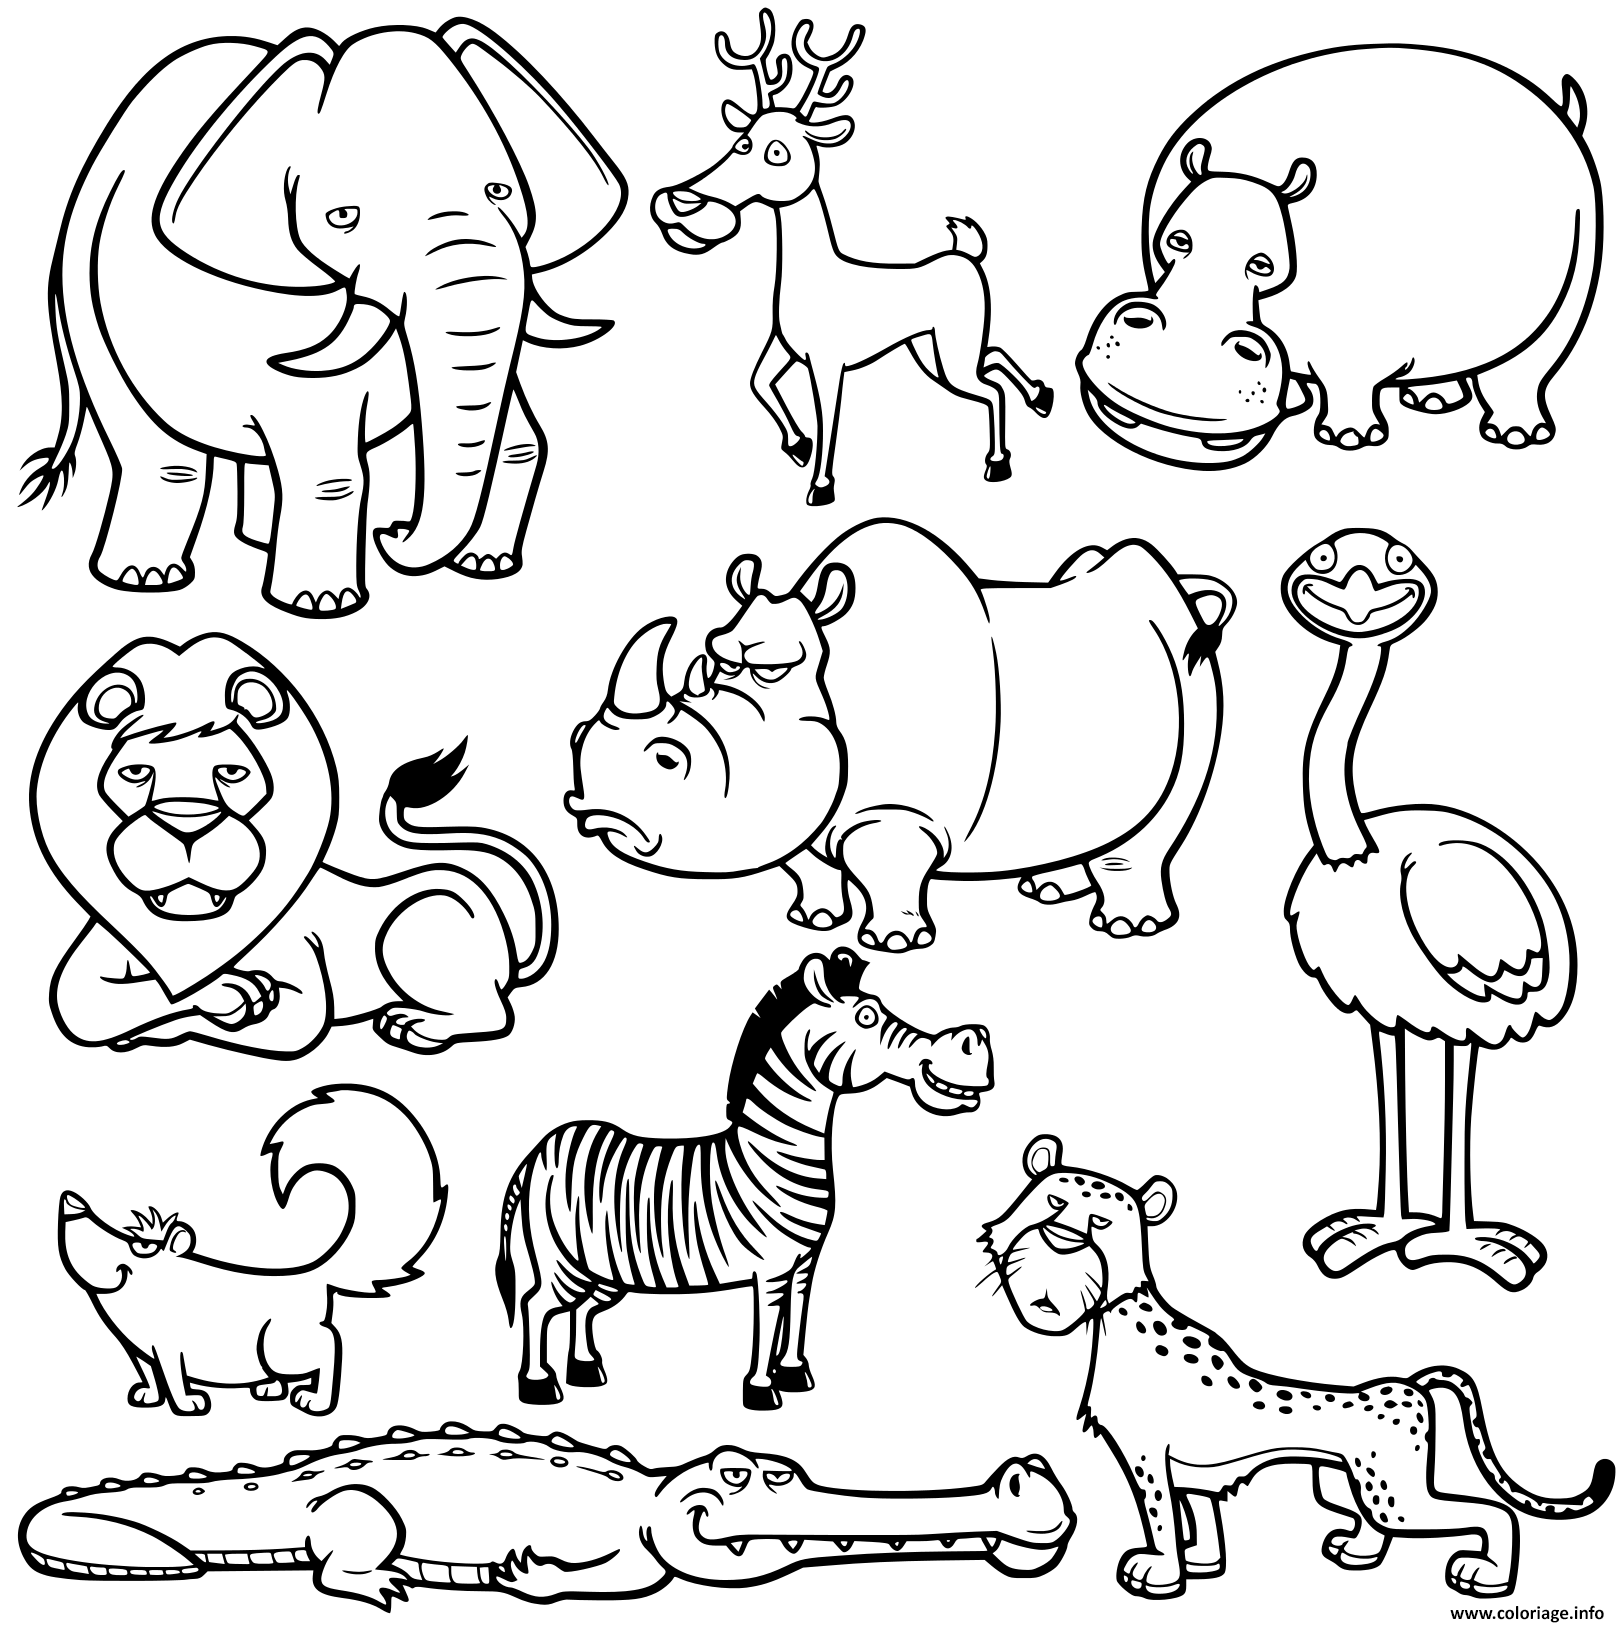 Coloriage animaux sauvages - JeColorie.com